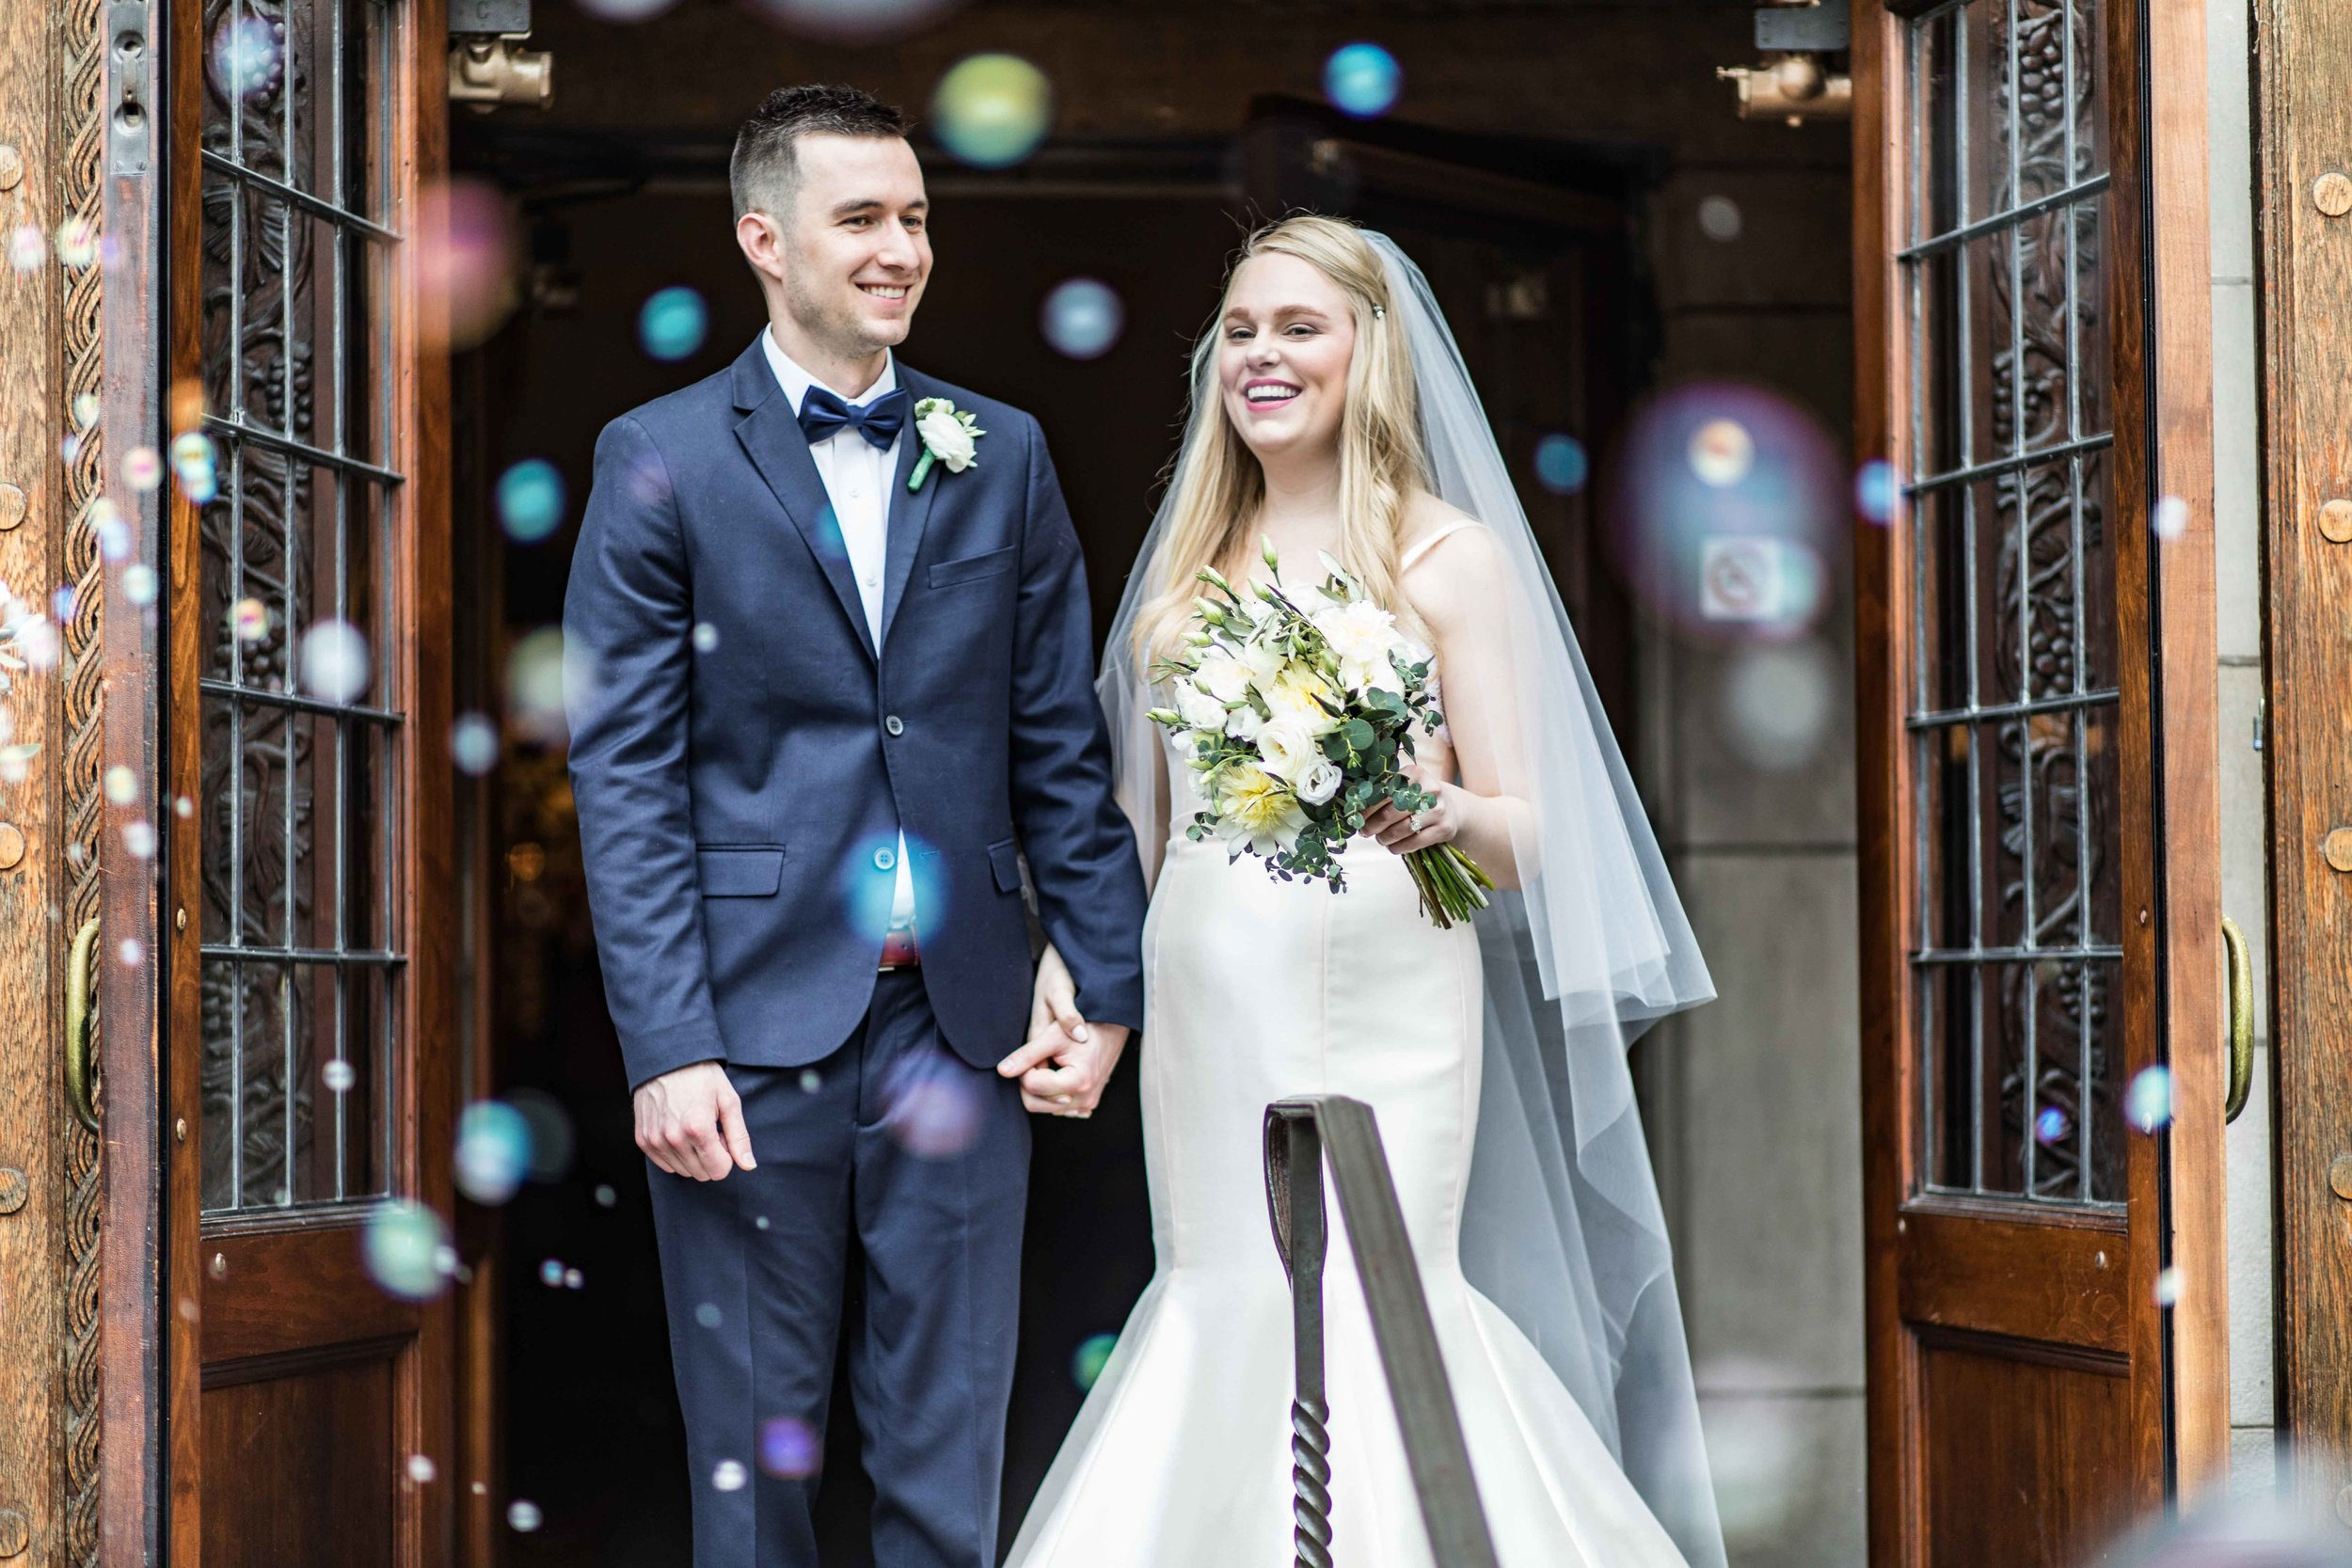 Bride and Groom bubble exit from the tall wood church doors